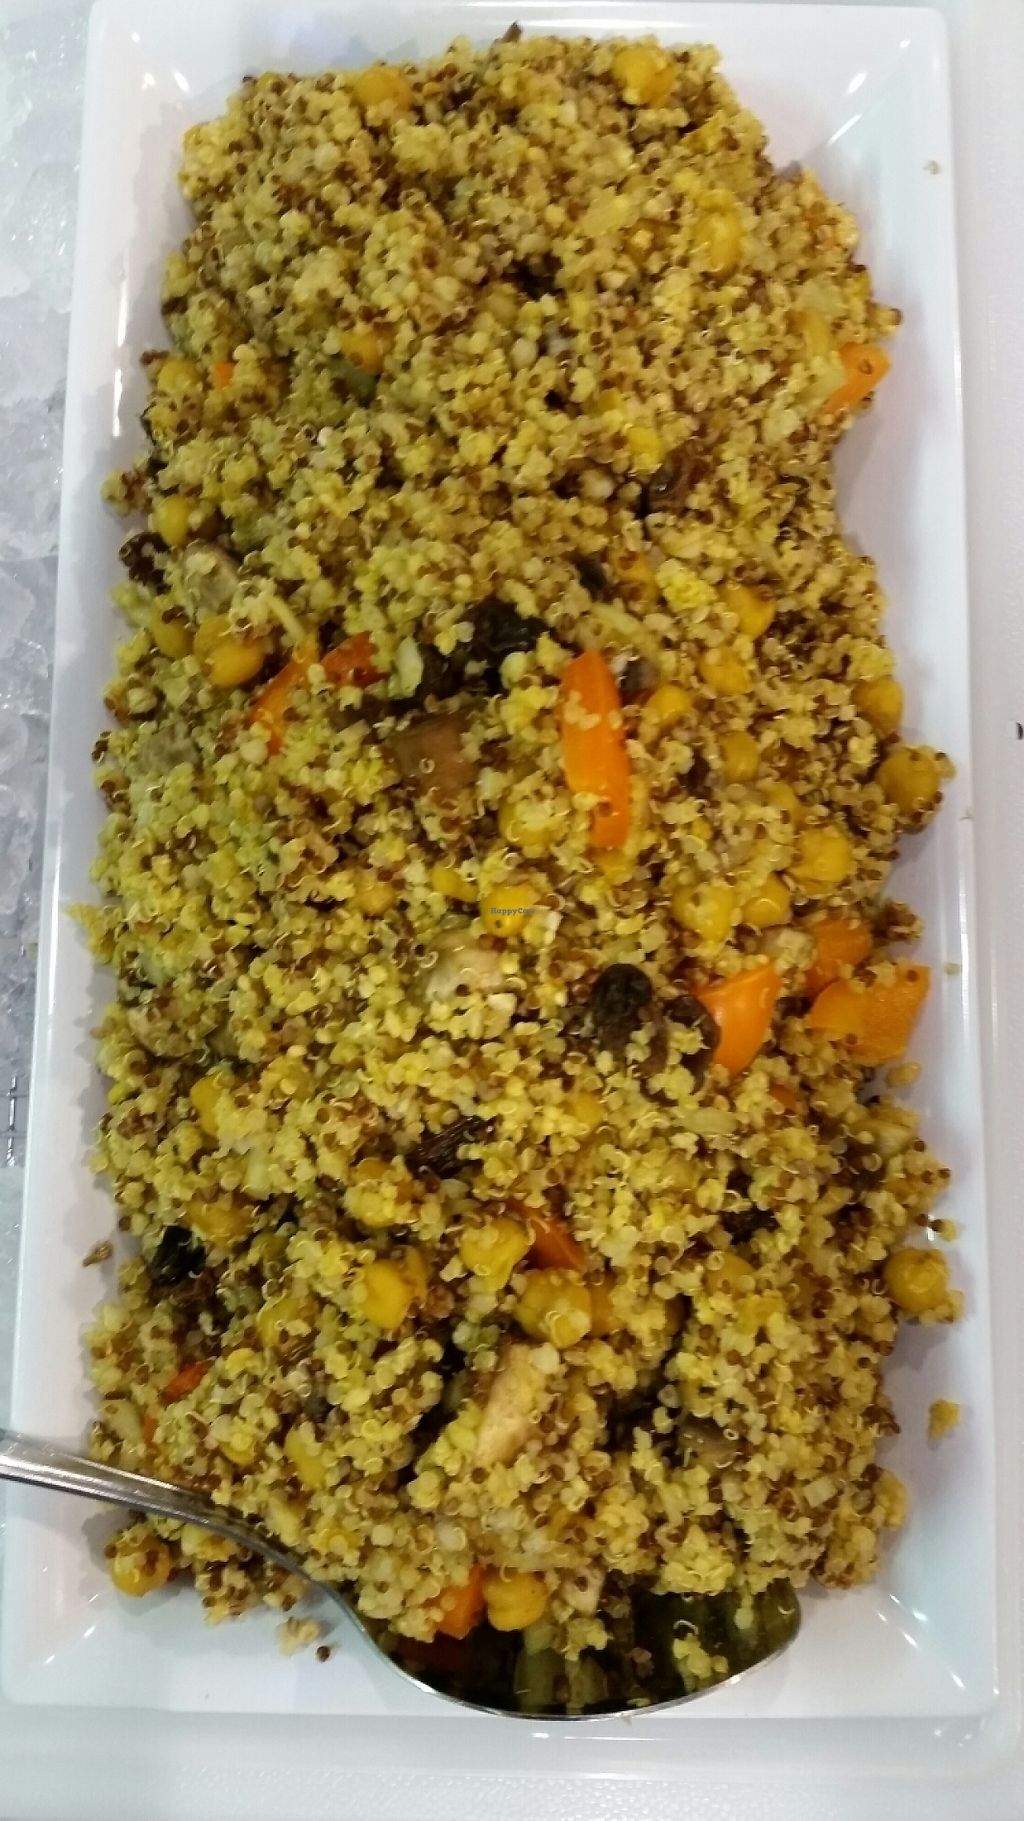 """Photo of Healthy Lifestyle Essentials  by <a href=""""/members/profile/MicheleHogarthLawren"""">MicheleHogarthLawren</a> <br/>quinoa with curried garbonzo beans & mushrooms <br/> May 10, 2017  - <a href='/contact/abuse/image/90733/257497'>Report</a>"""